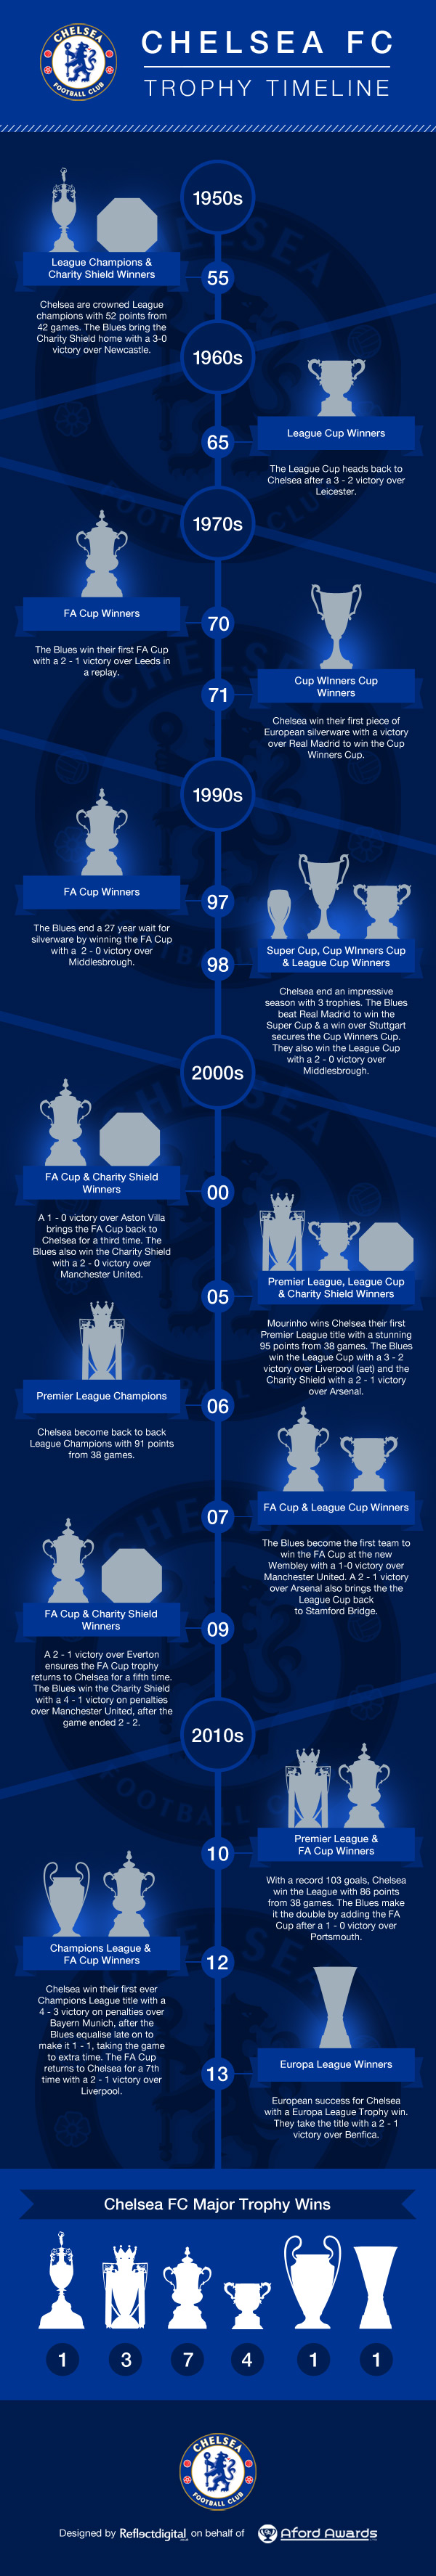 Chelsea Football Club Trophies